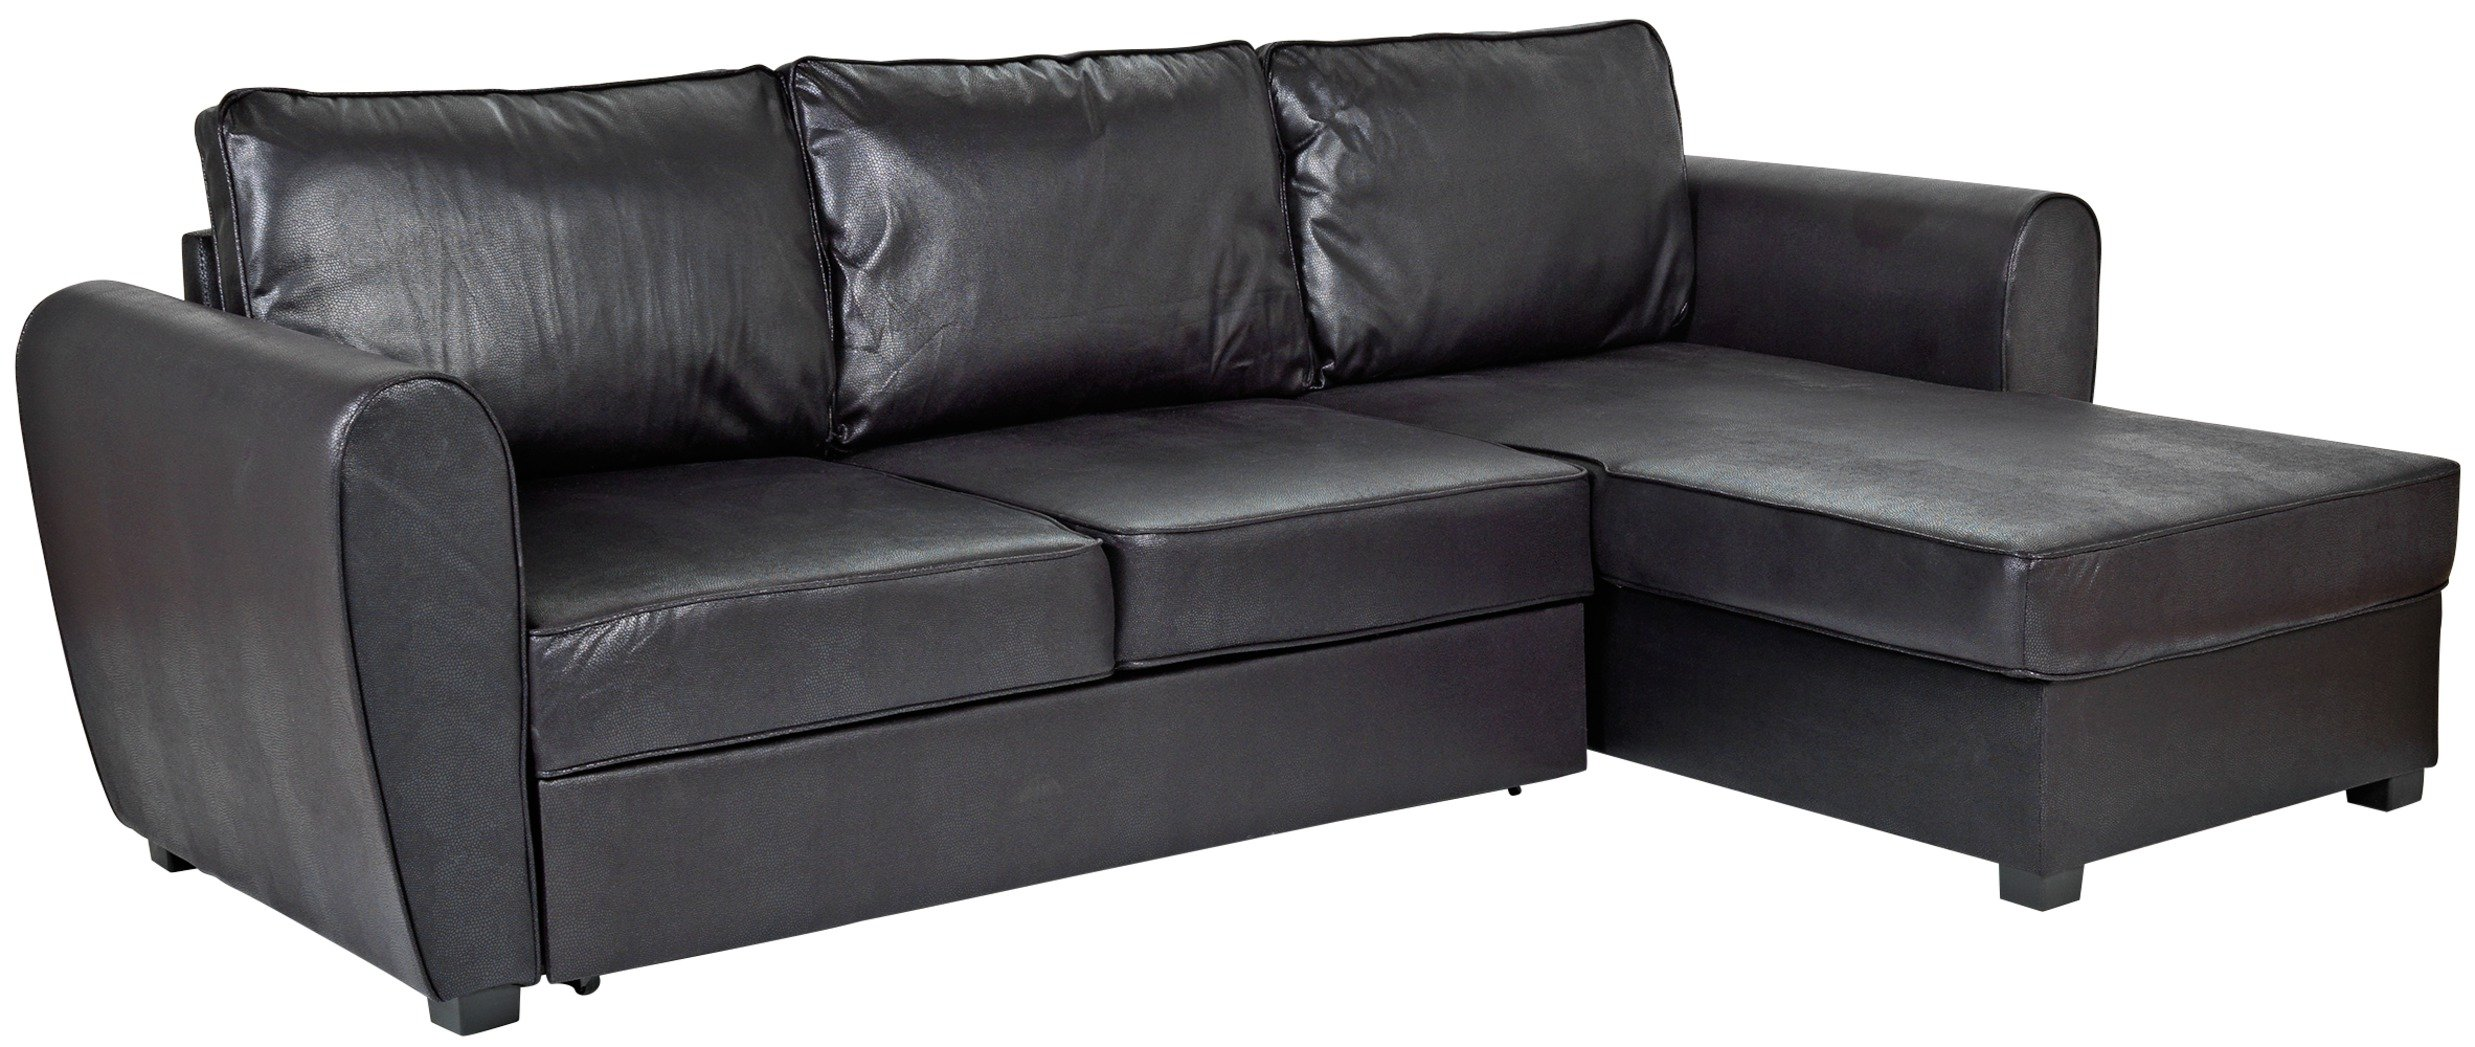 Buy chair beds sofa beds chairbeds and futons at for Argos chaise longue